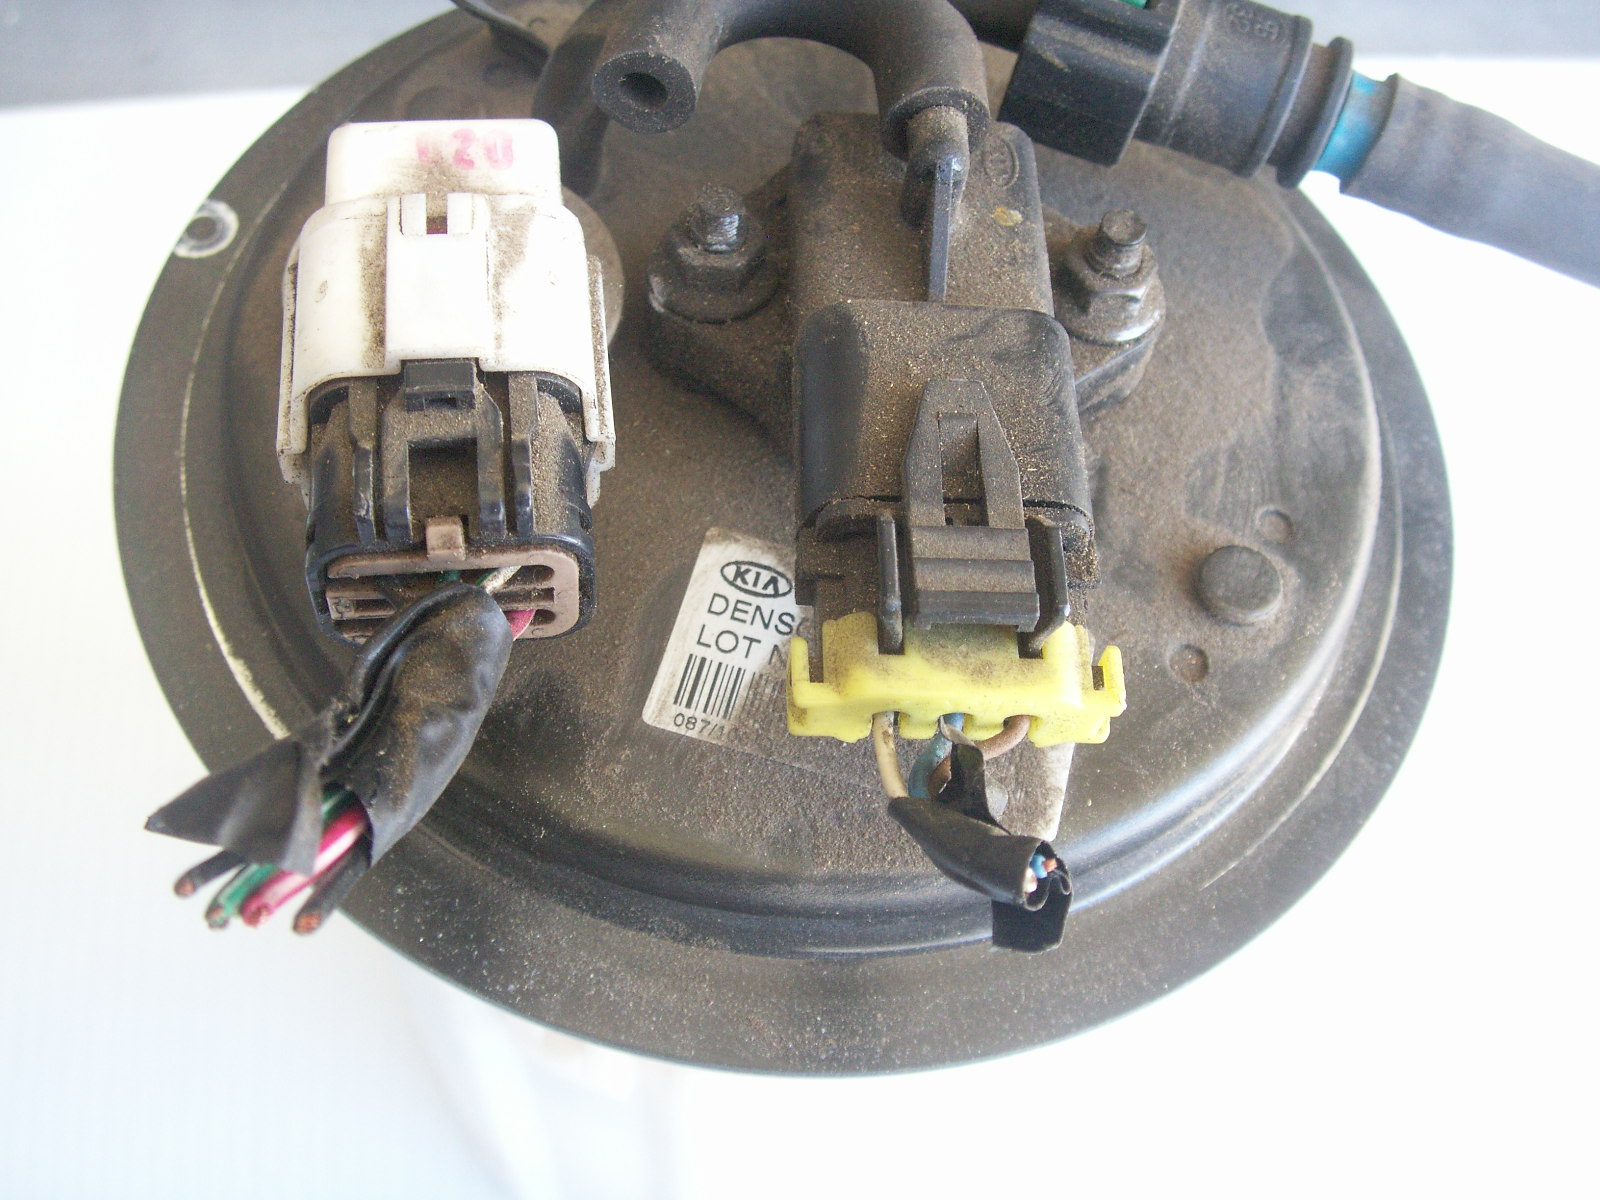 55934 Flue Gage Now Working 2002 Kia likewise Saab 9 3 Relay Diagram as well 2002 Kia Sportage Instrument Panel Fuse Box Diagram moreover 1981 280zx Grounding Issue 34921 together with 2009 Nissan 370z Wiring. on nissan fuel pump wiring diagram